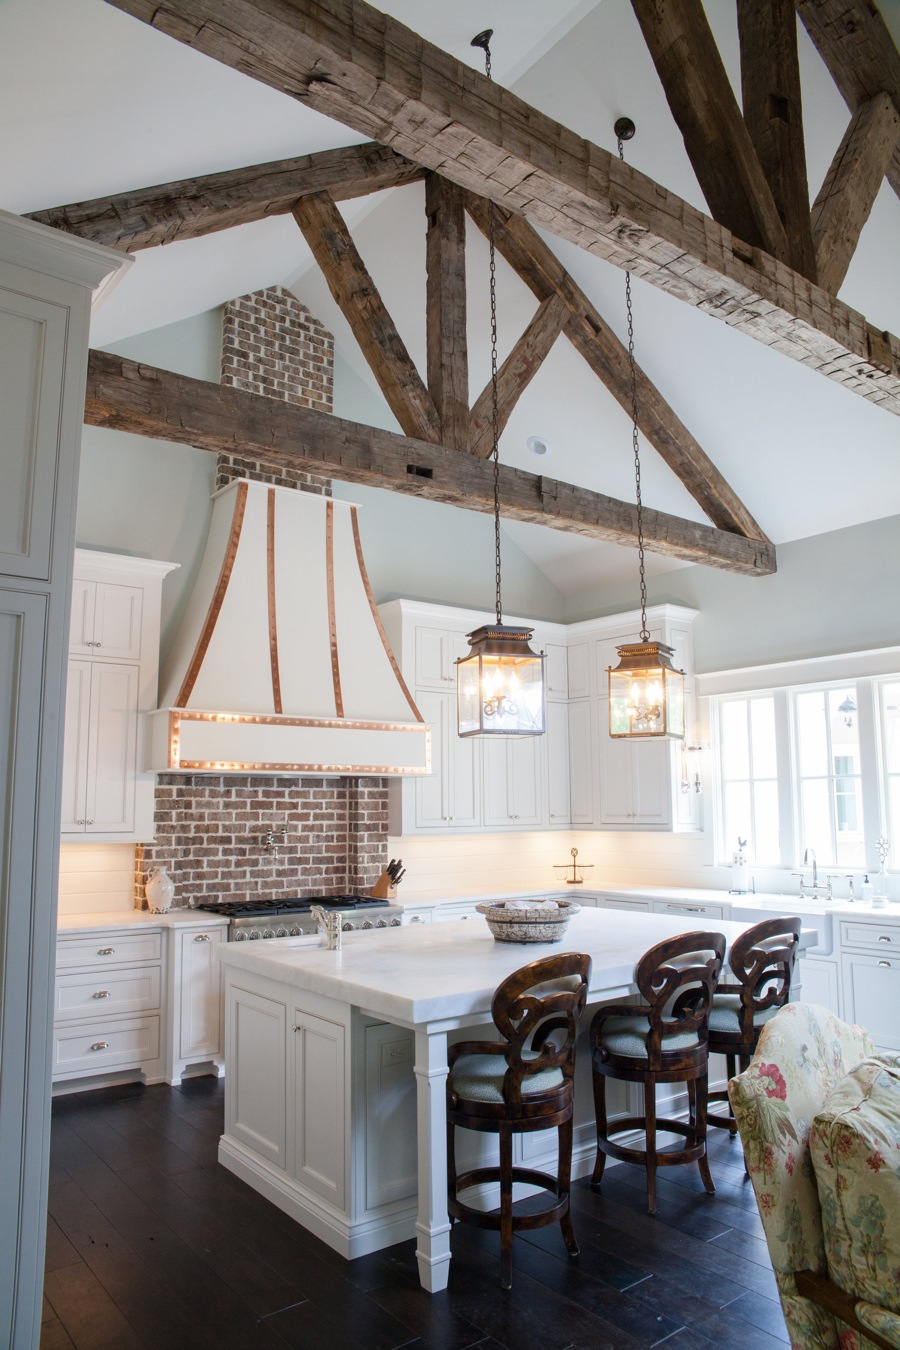 Vaulted Ceiling & White Classic Kitchen Island